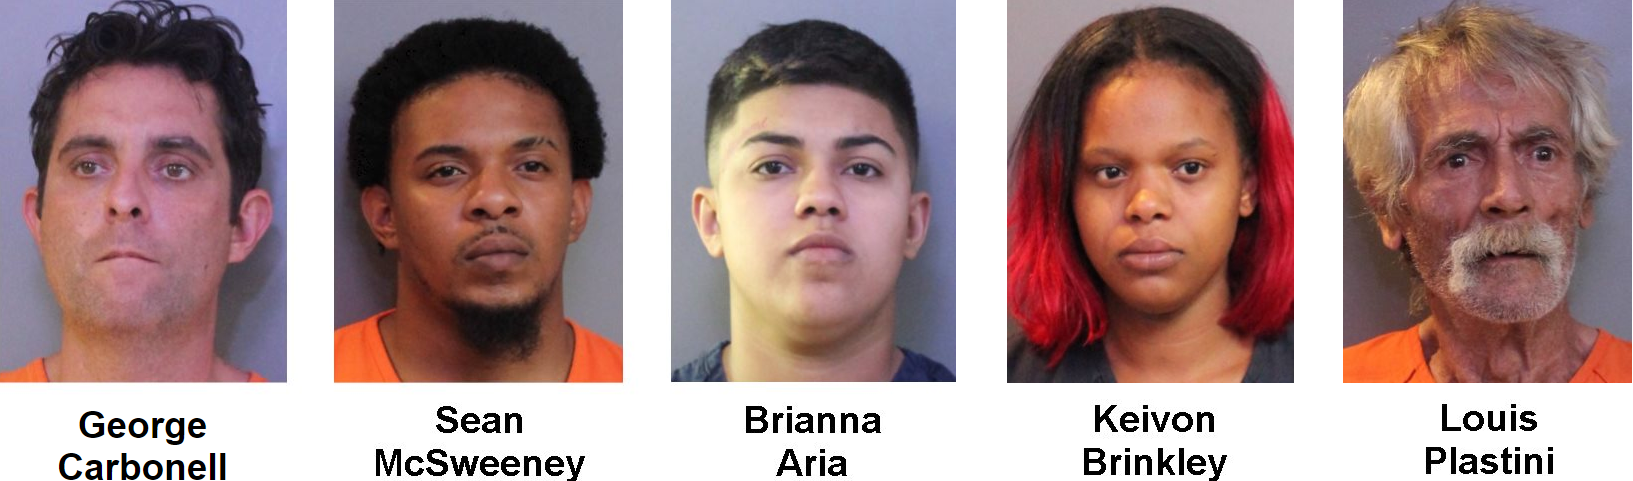 A week long investigation resulted in the arrest of 277 suspects involved in human trafficking and online prostitution. (Polk County Sheriff's Office)